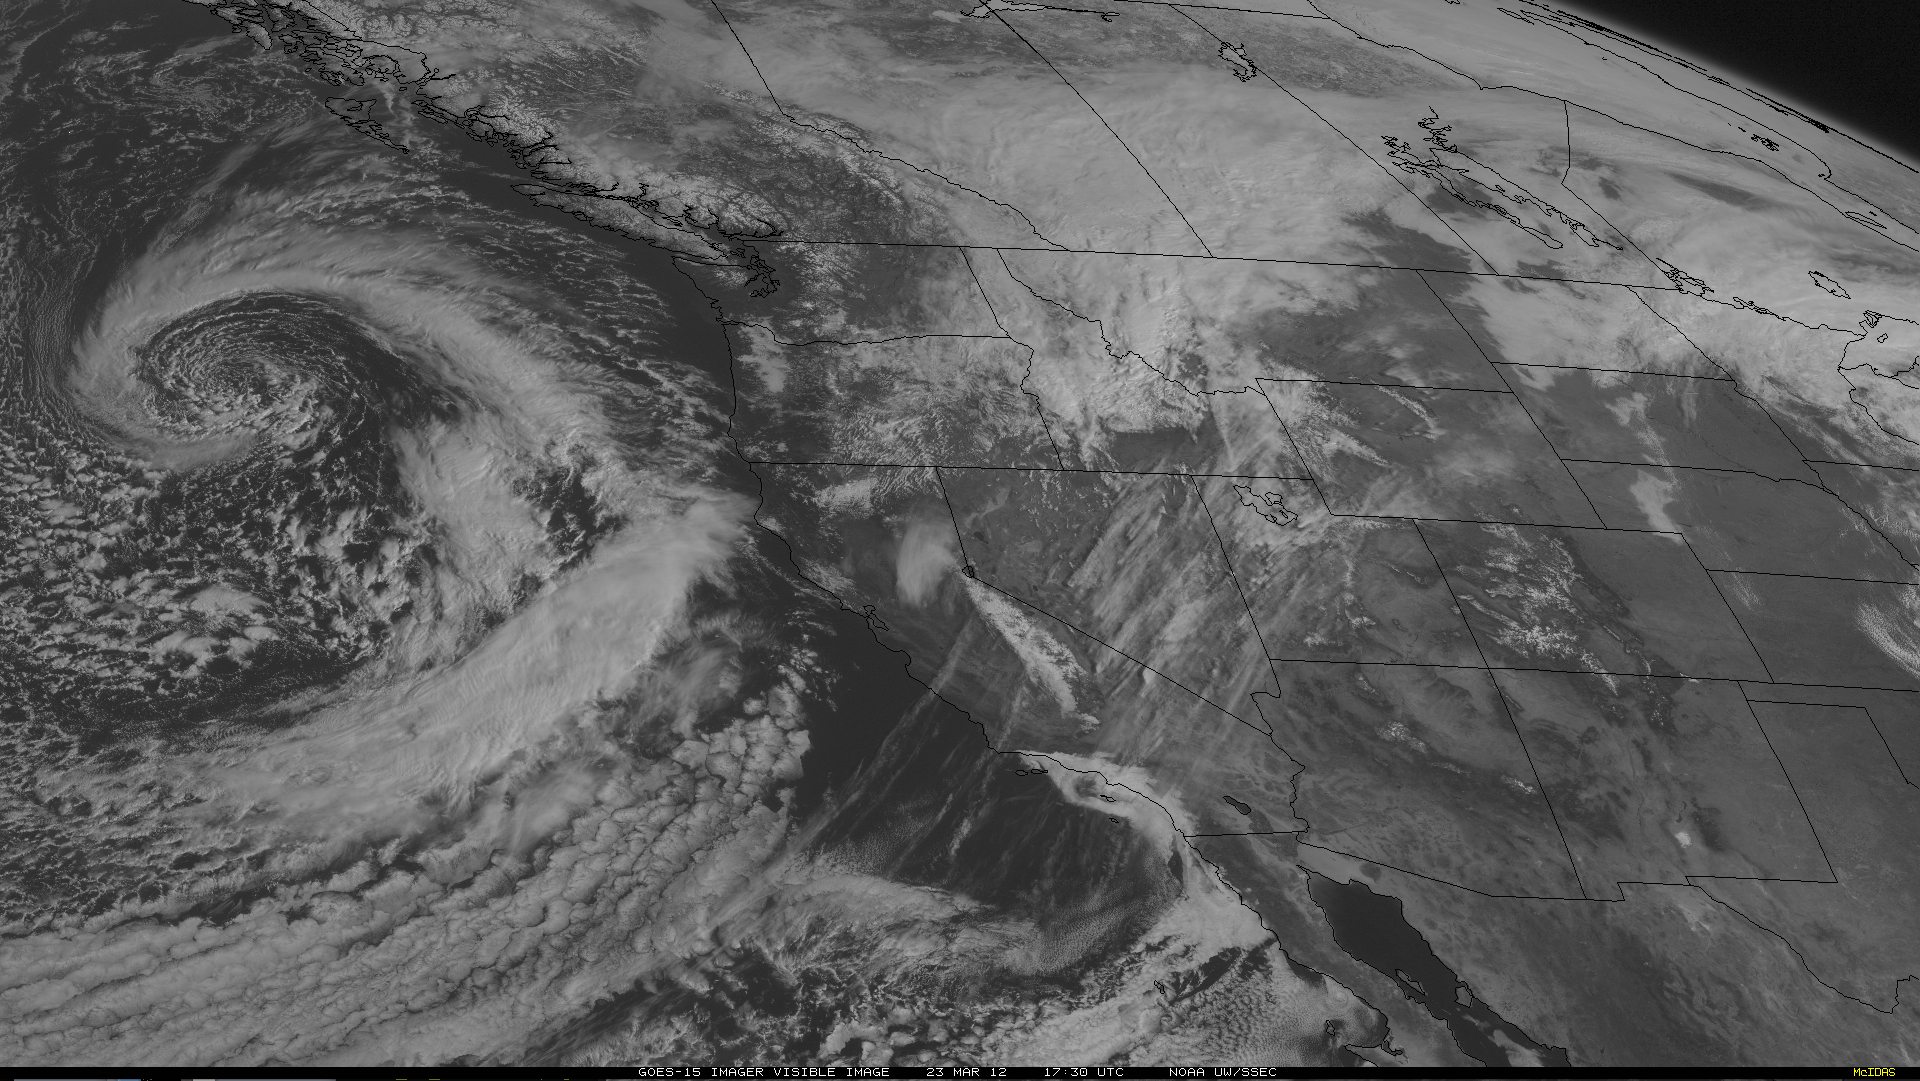 GOES-15 0.63 µm visible channel imsage (click image to play animation)